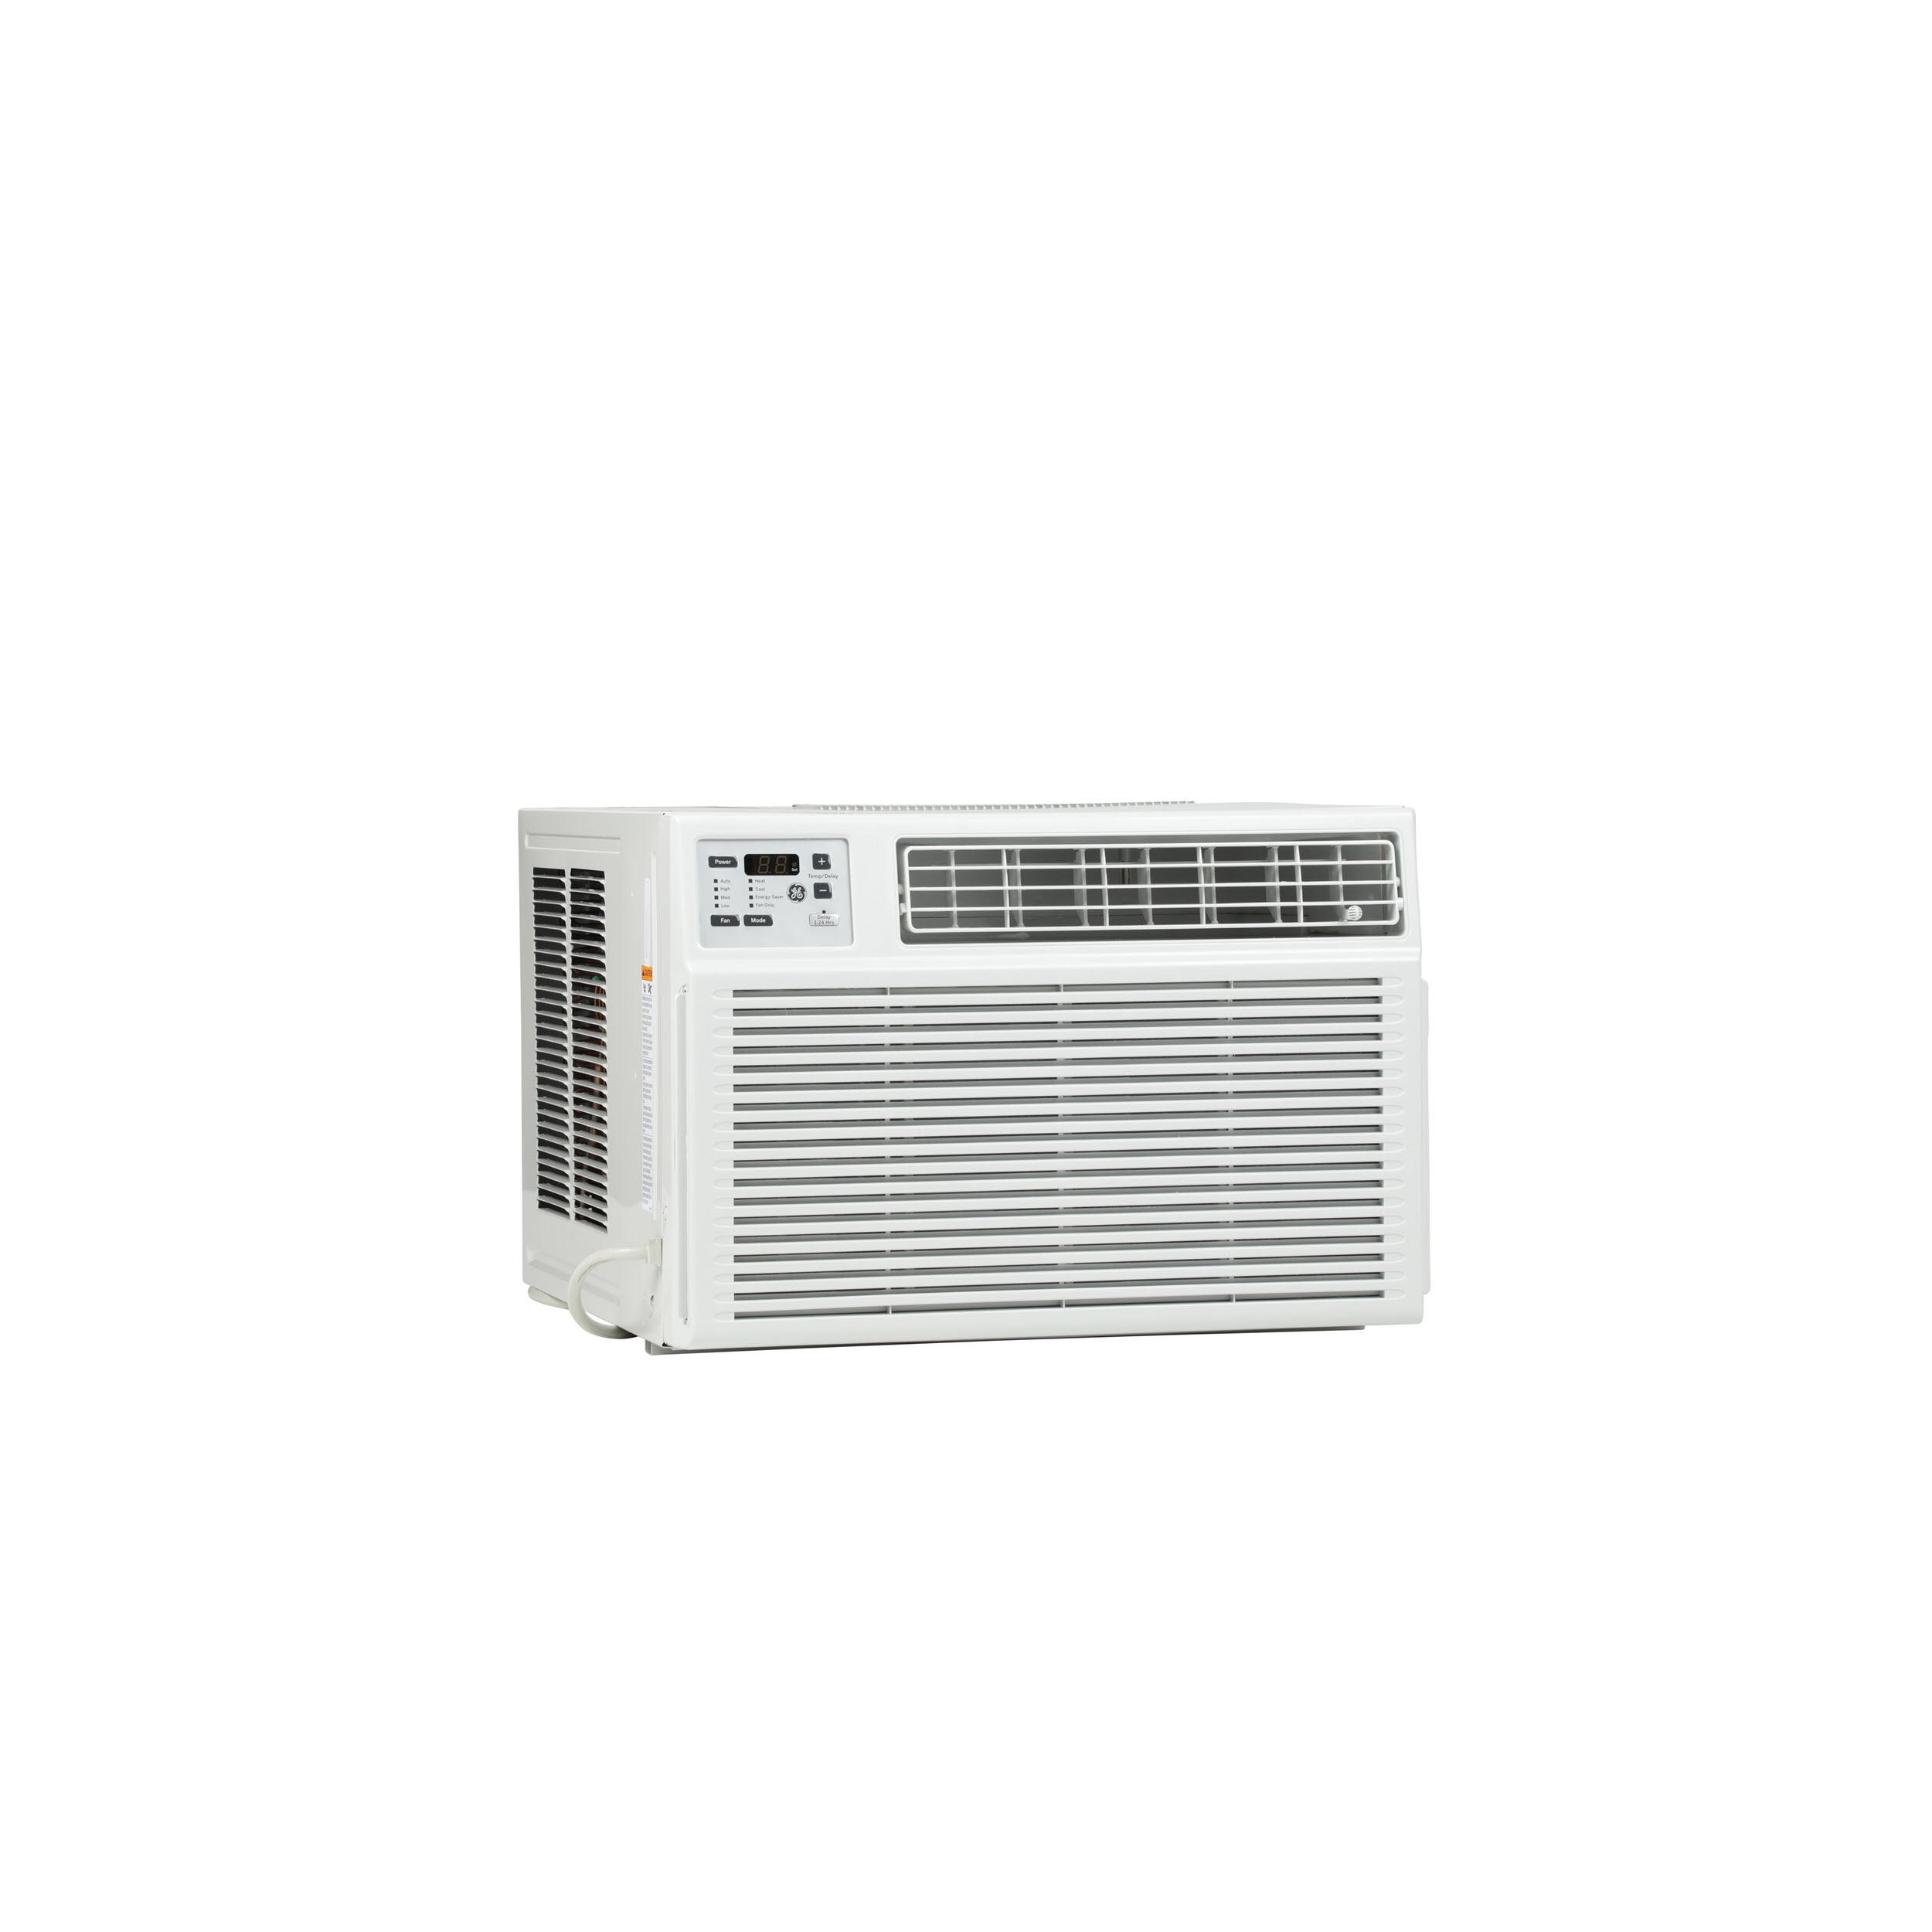 Model: AEE08AT | GE GE® 115 Volt Electronic Heat/Cool Room Air Conditioner